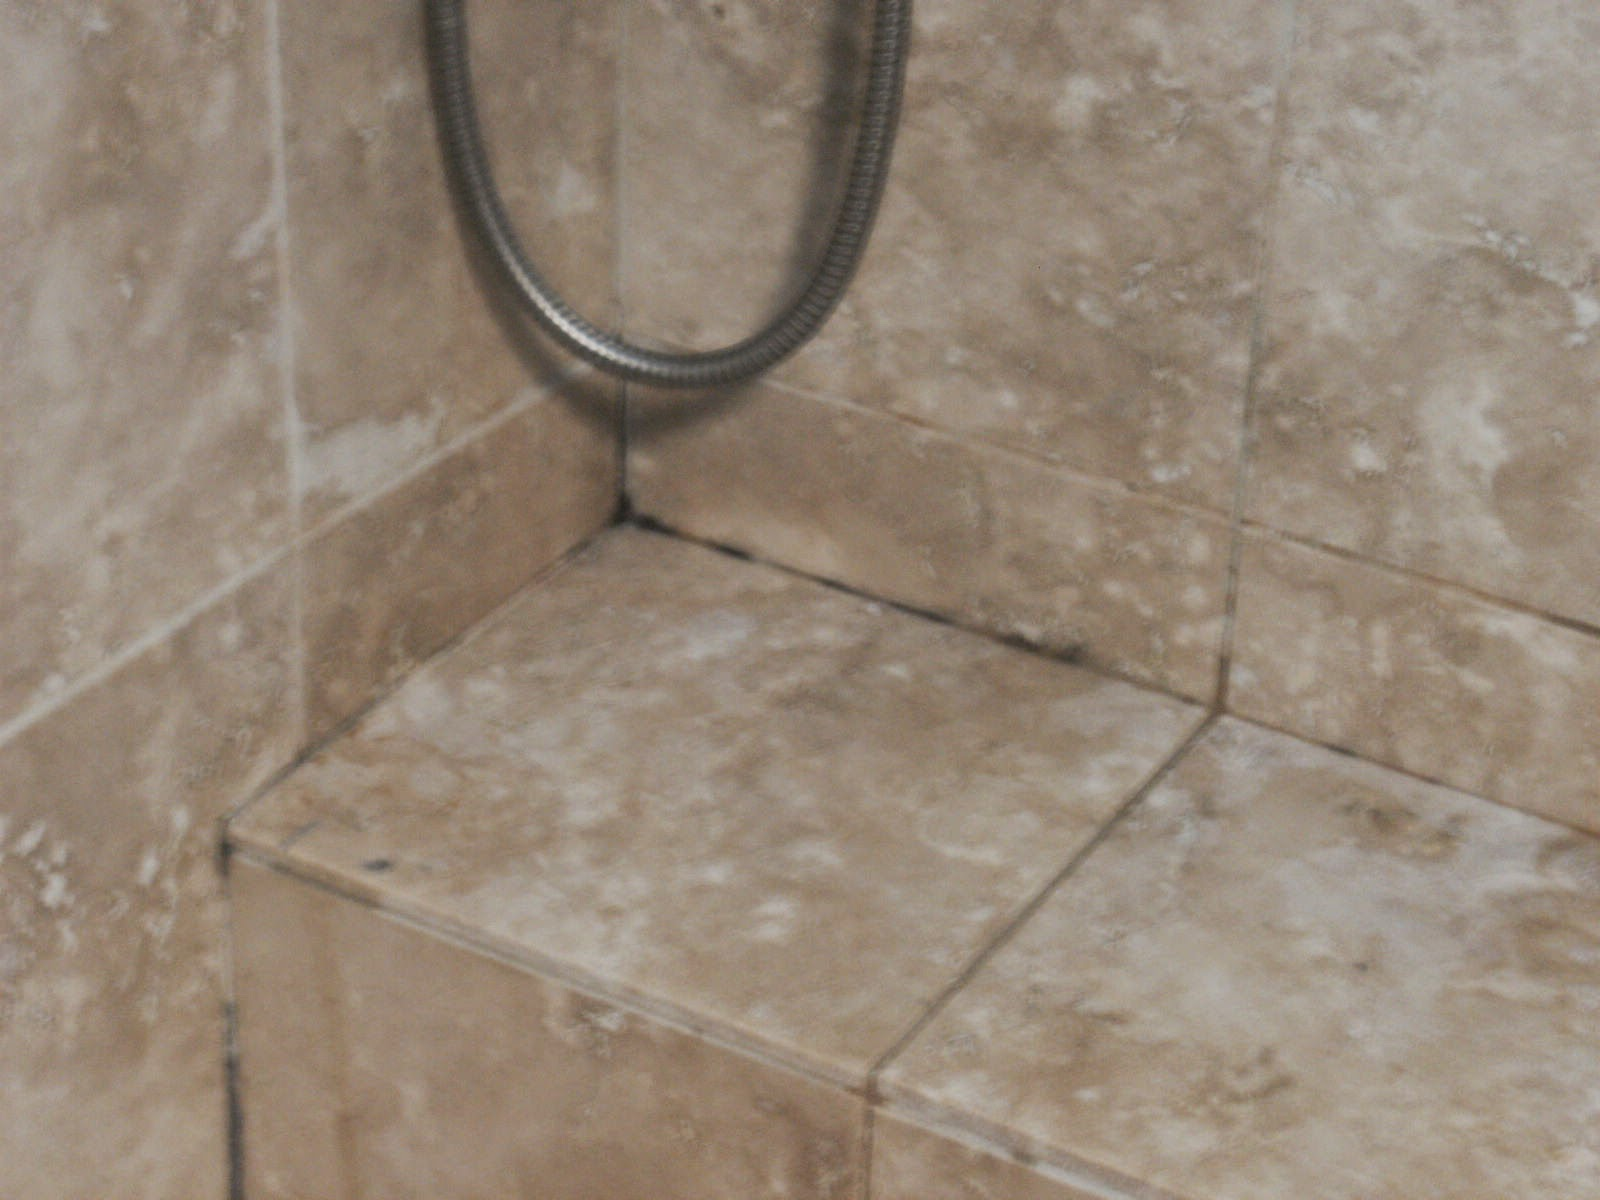 Black Mold Travertine Tile Revisit